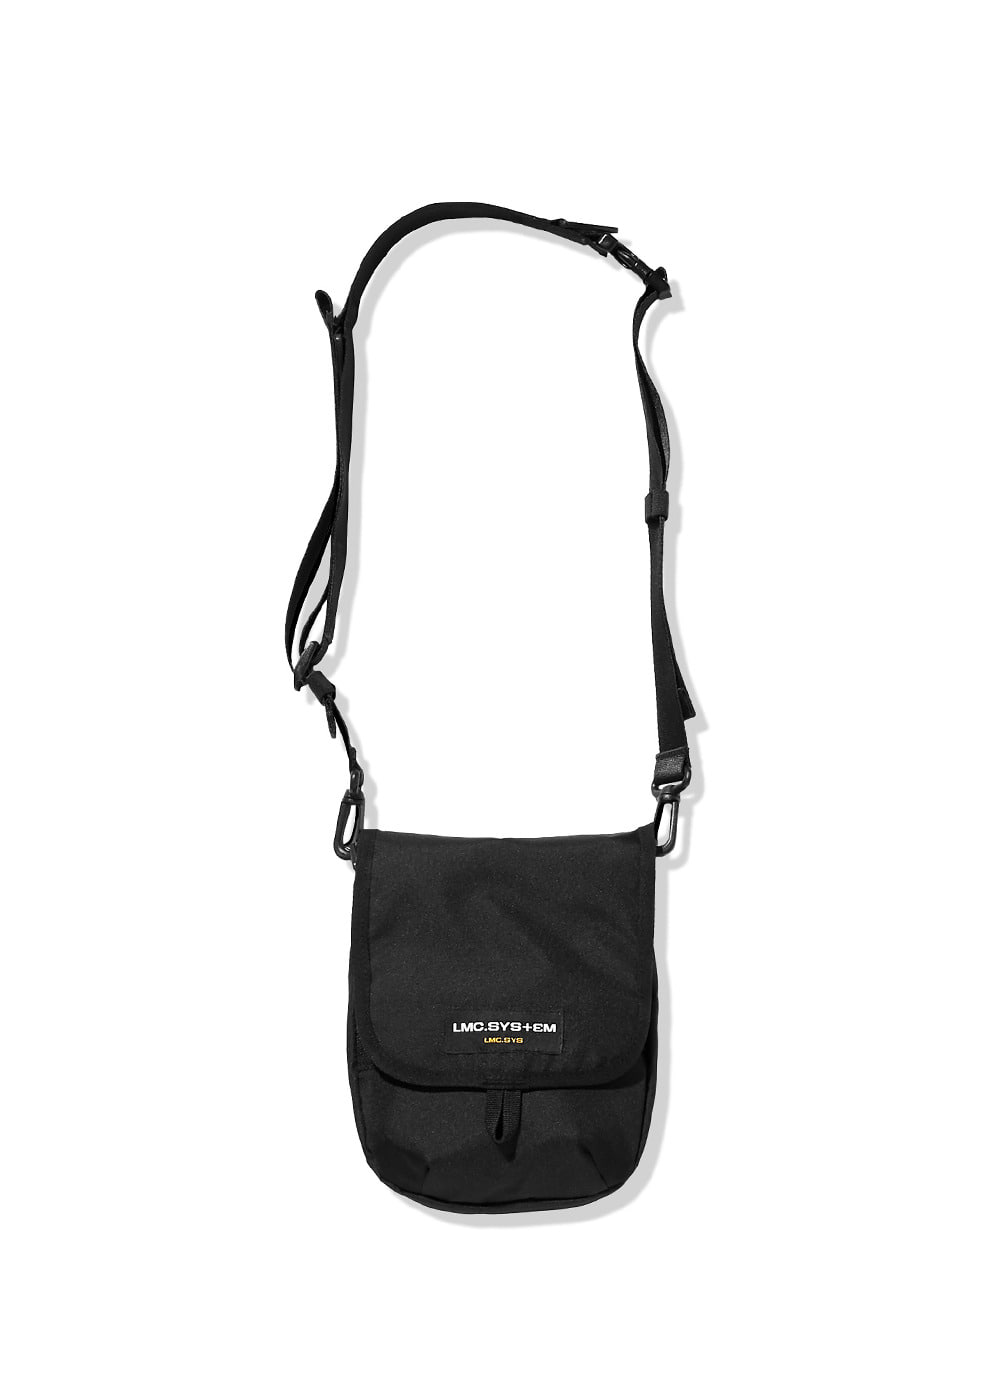 LMC SYSTEM MINI MUSETTE CROSS BAG black